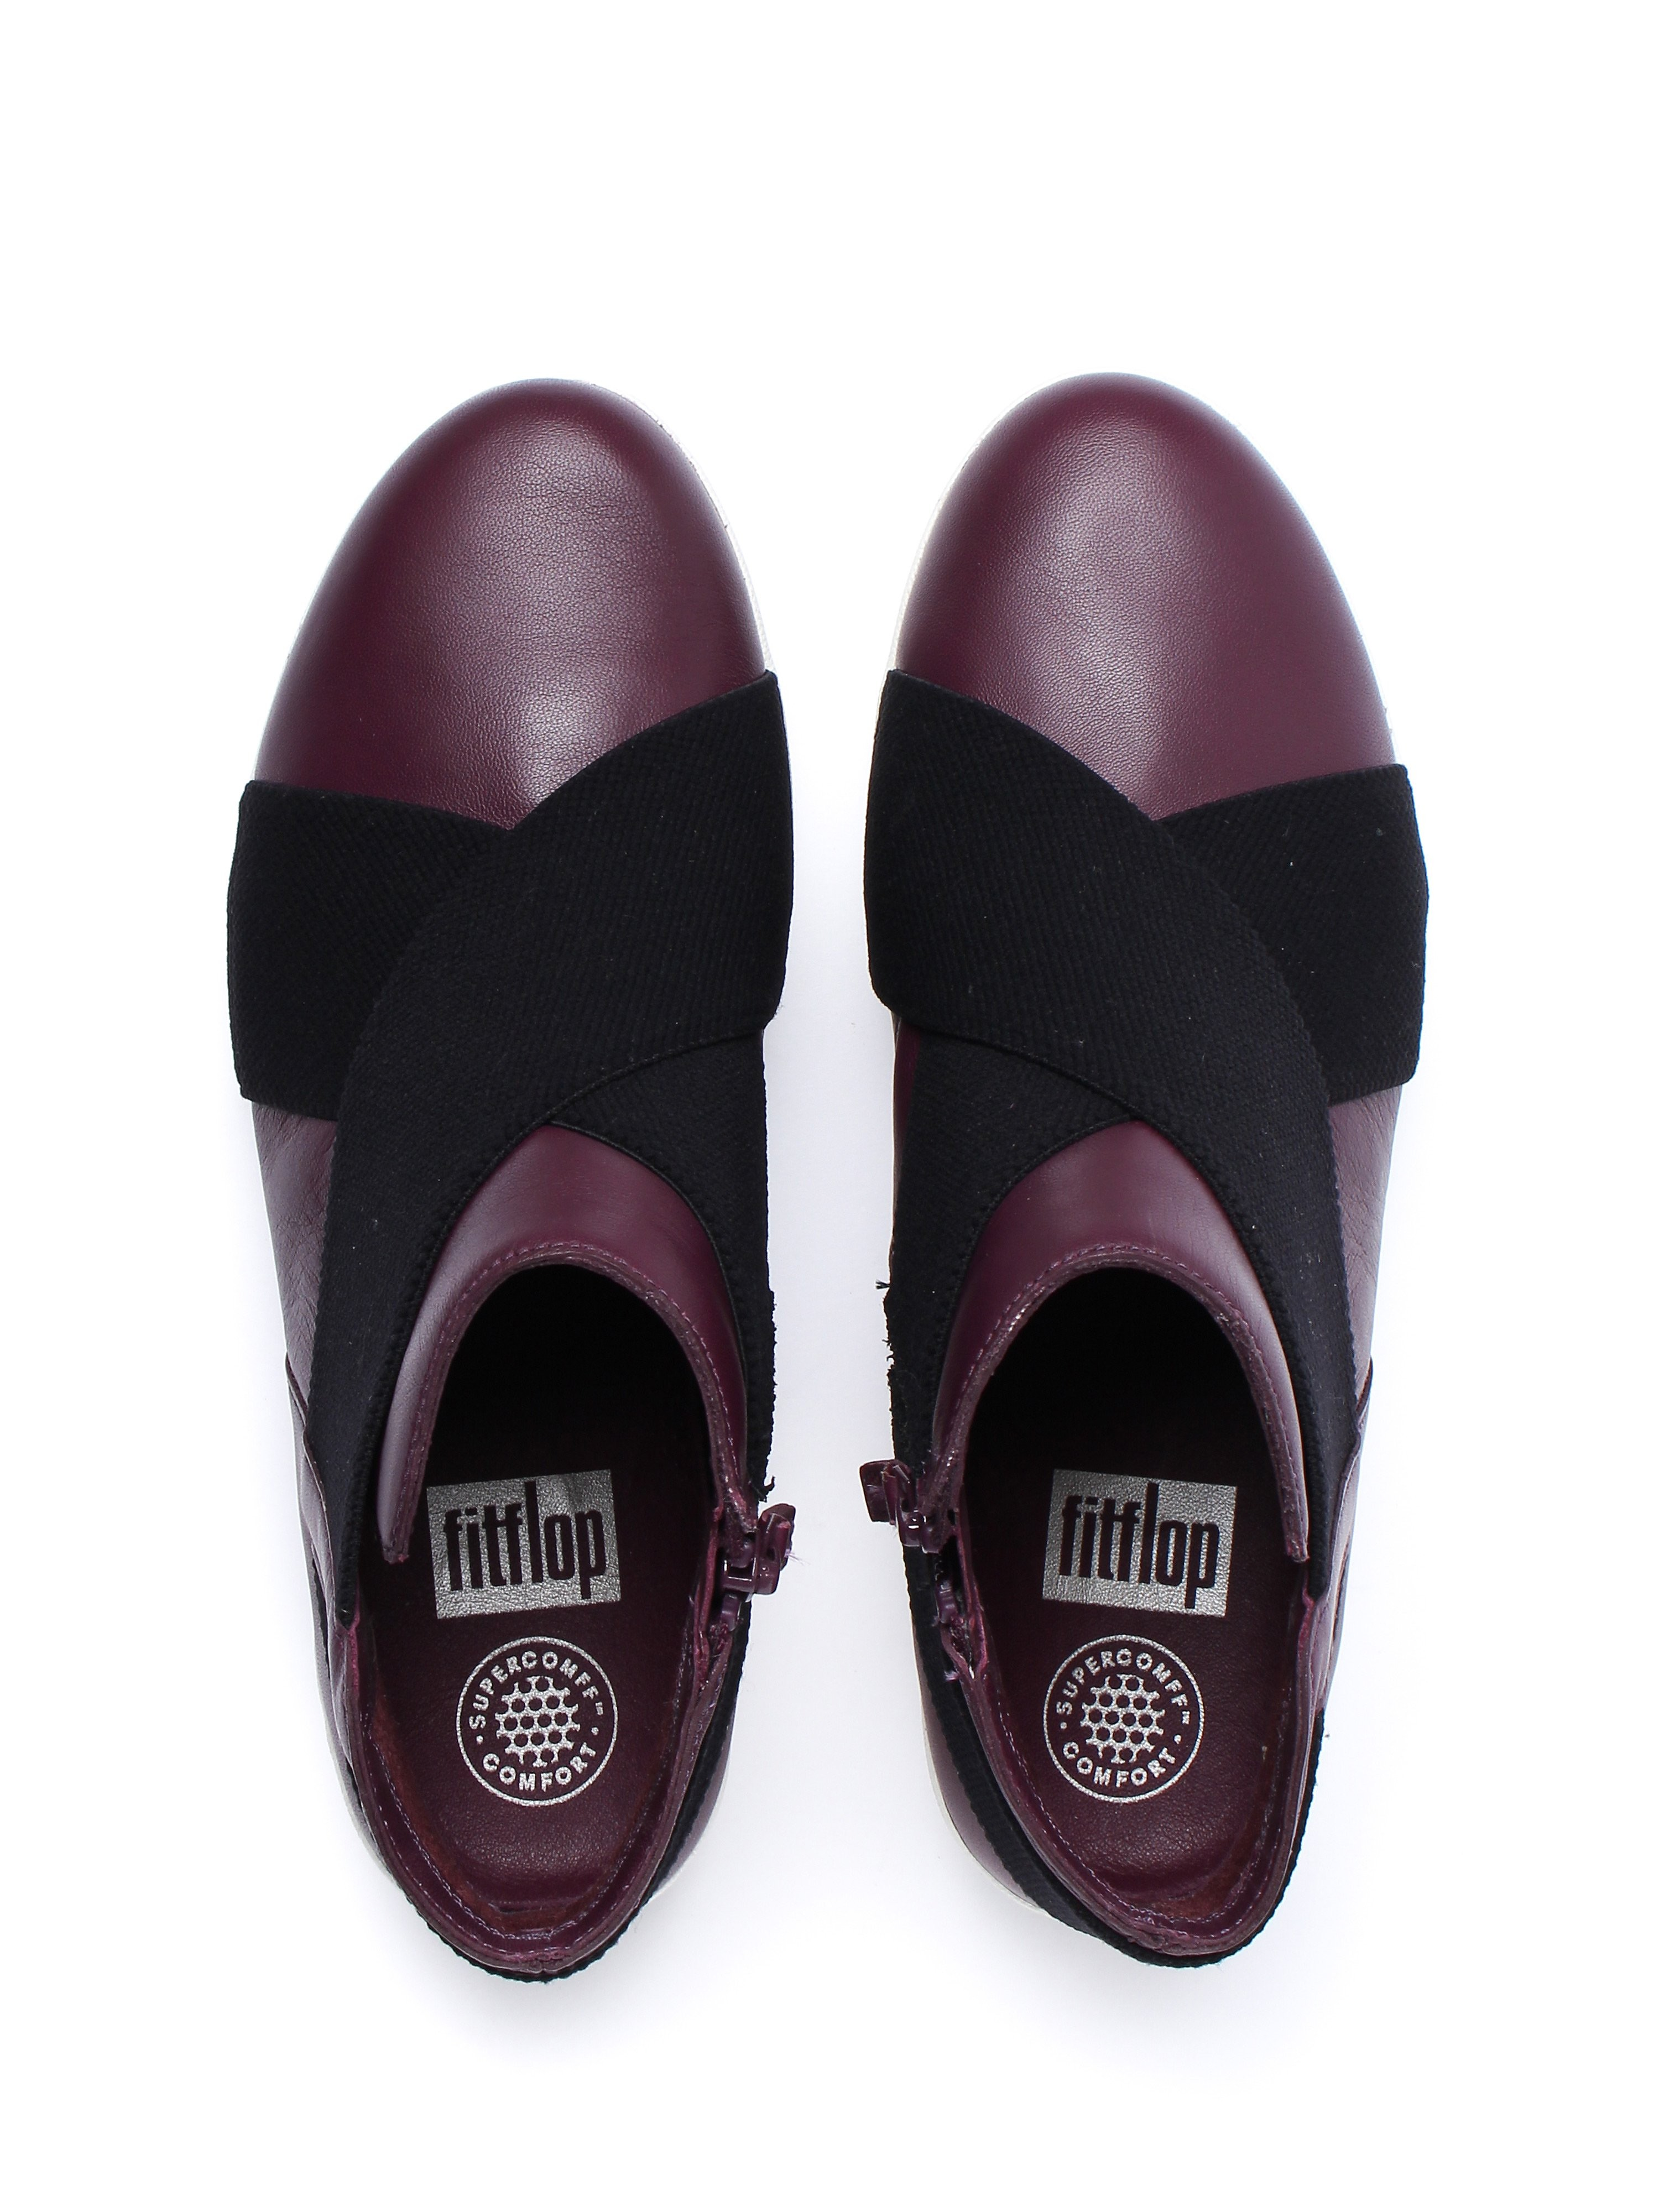 FitFlop Women's Superflex Ankle Boots - Deep Plum Leather